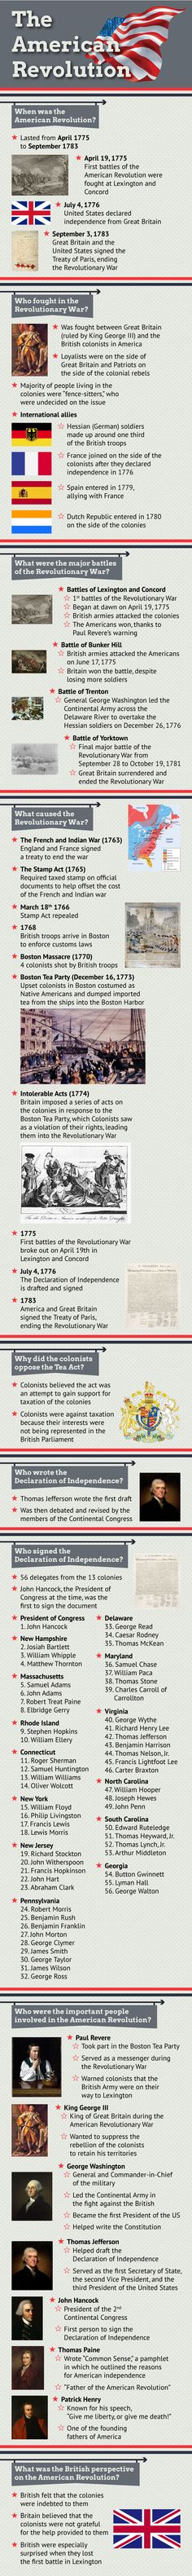 The American Revolution. Revolutionary War Basic Facts: when was it? who was involved? why did it happen? Us History, History Facts, Family History, American History, History Timeline, European History, History Classroom, Teaching History, American Revolutionary War